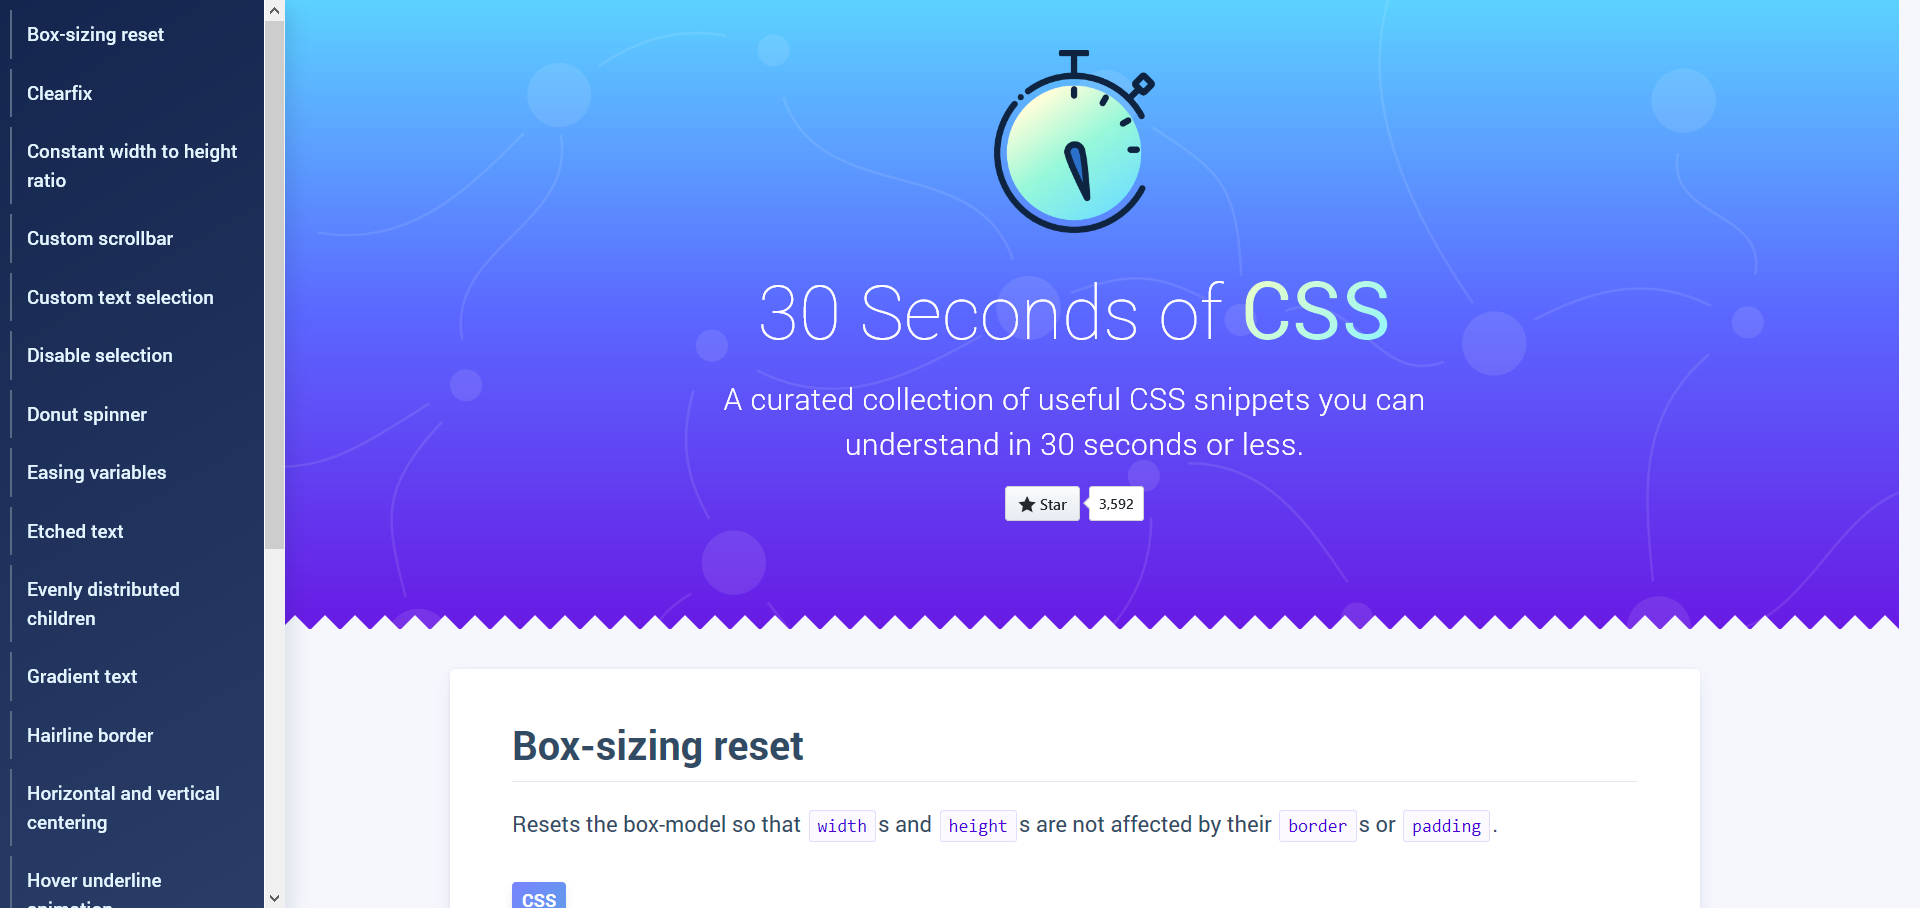 A curated collection of useful CSS snippets